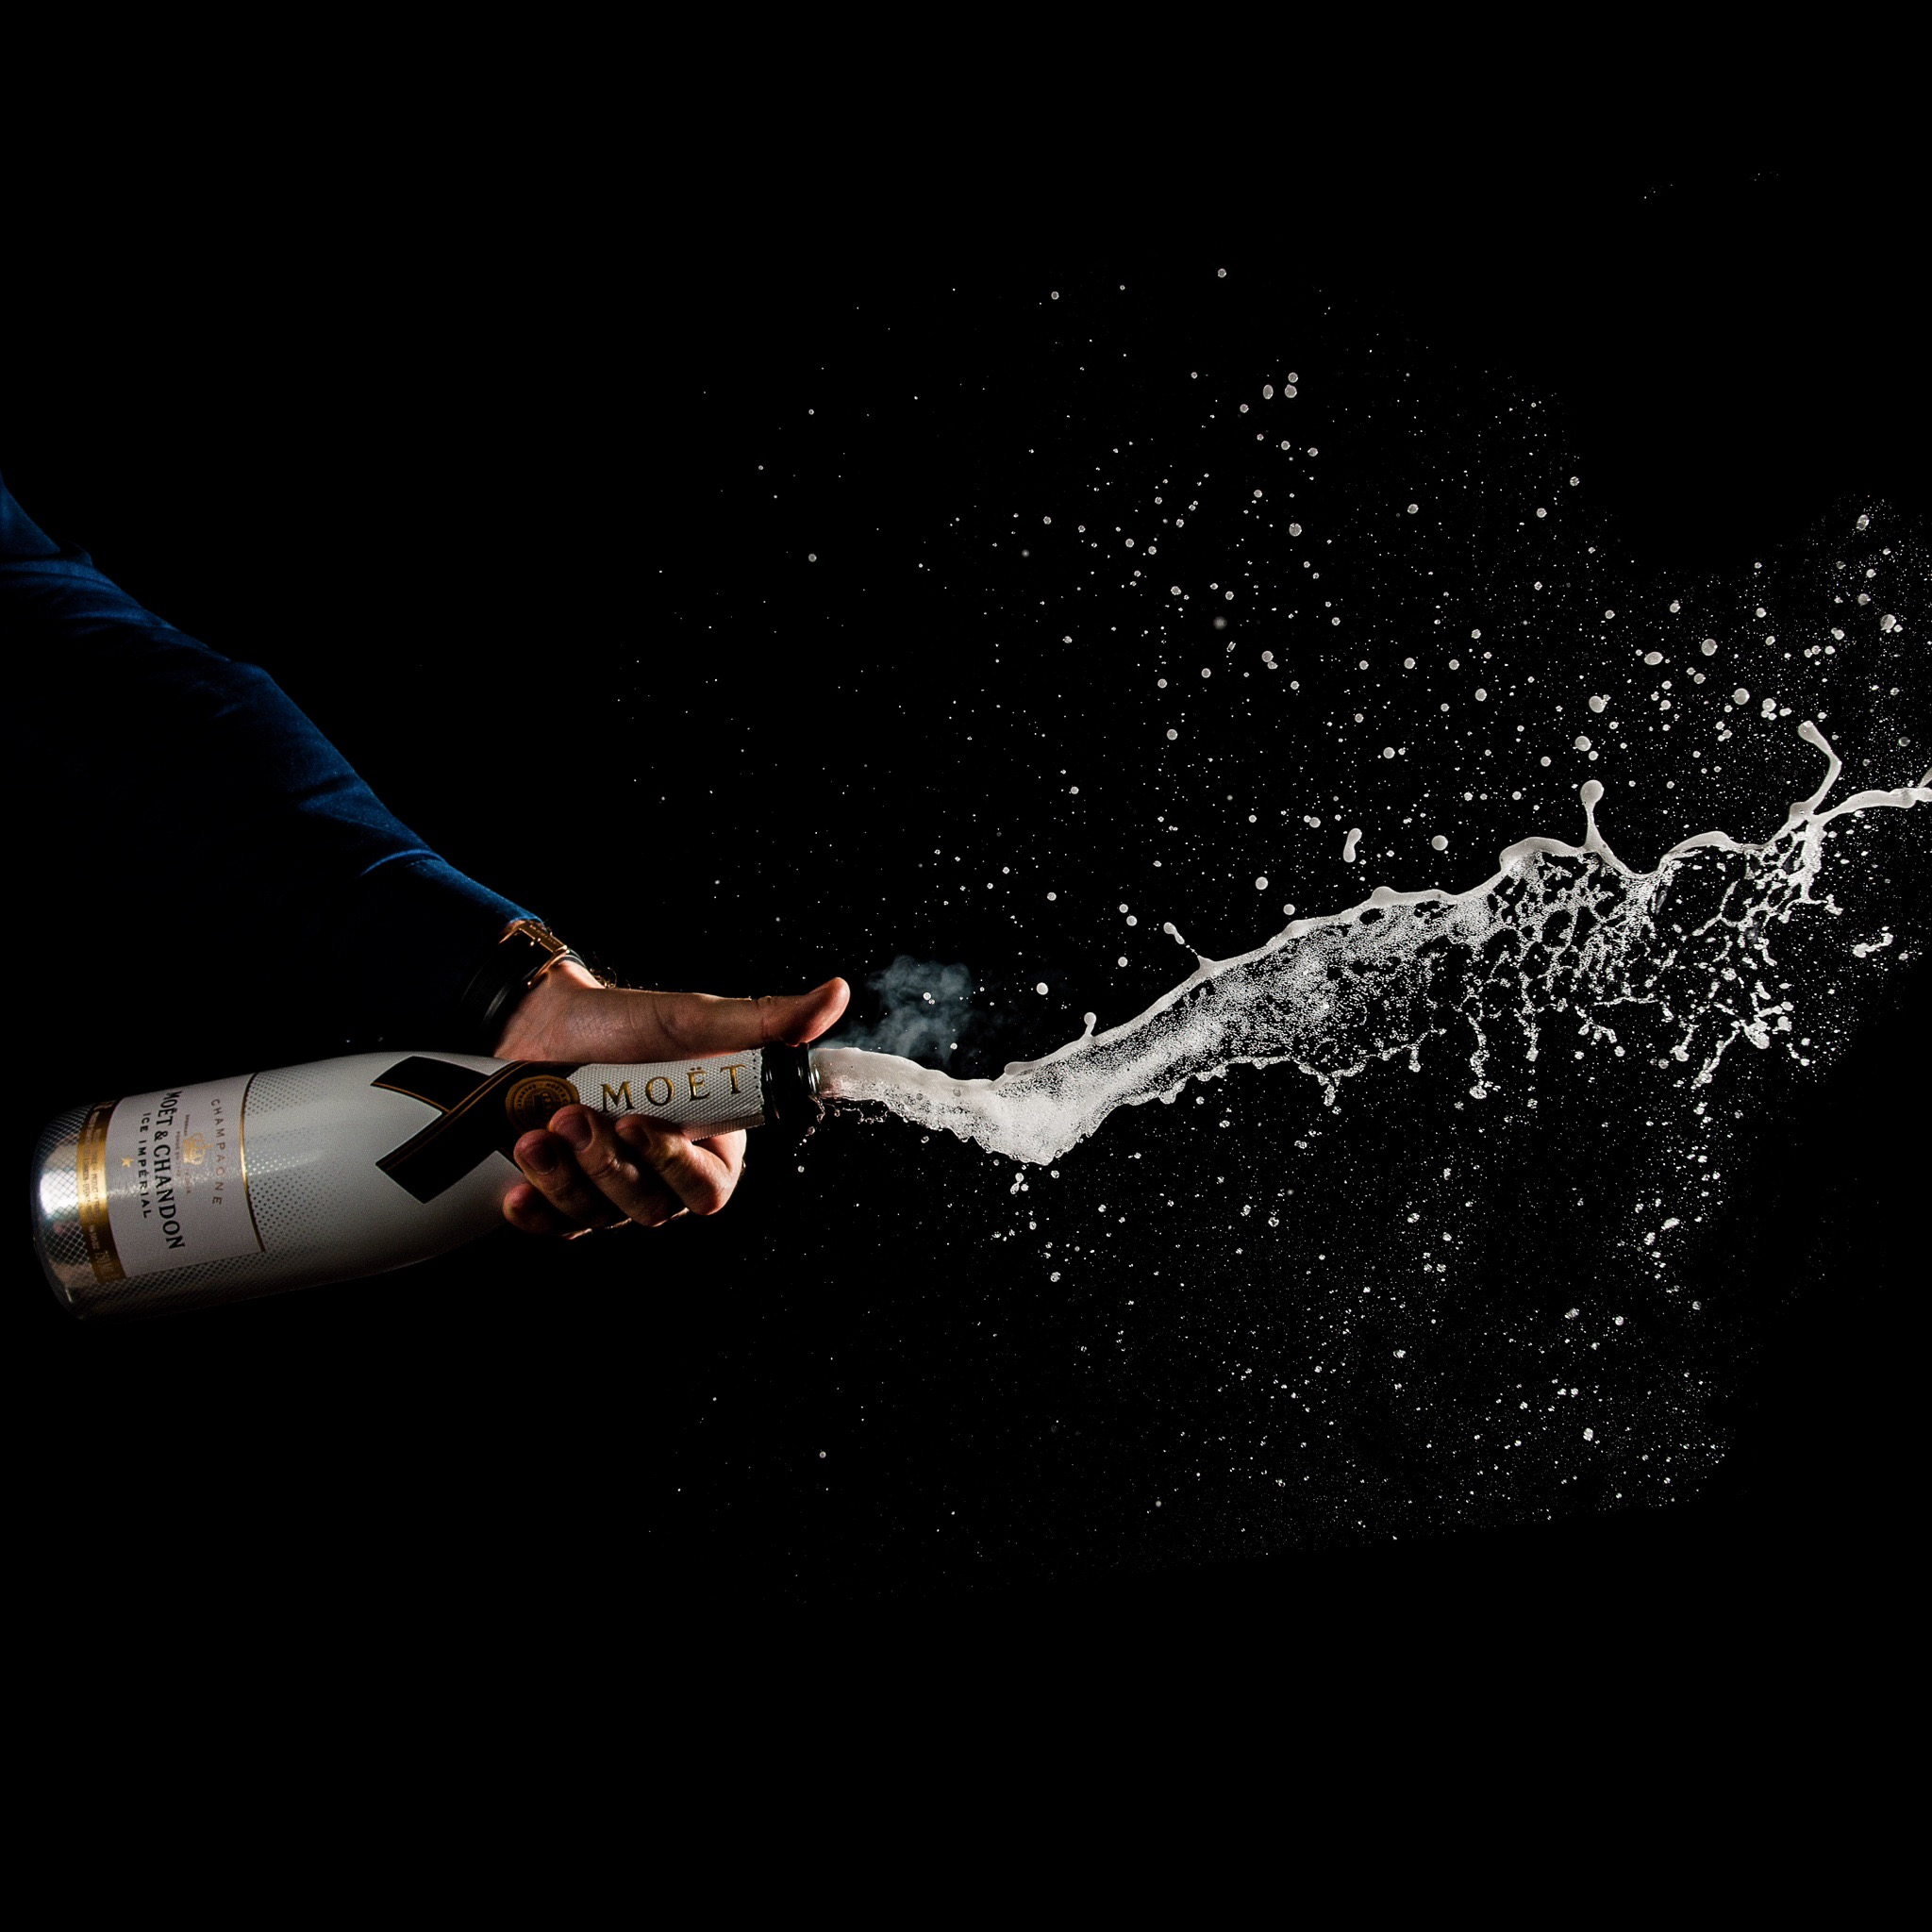 Moet Ice - Champagne Product photography